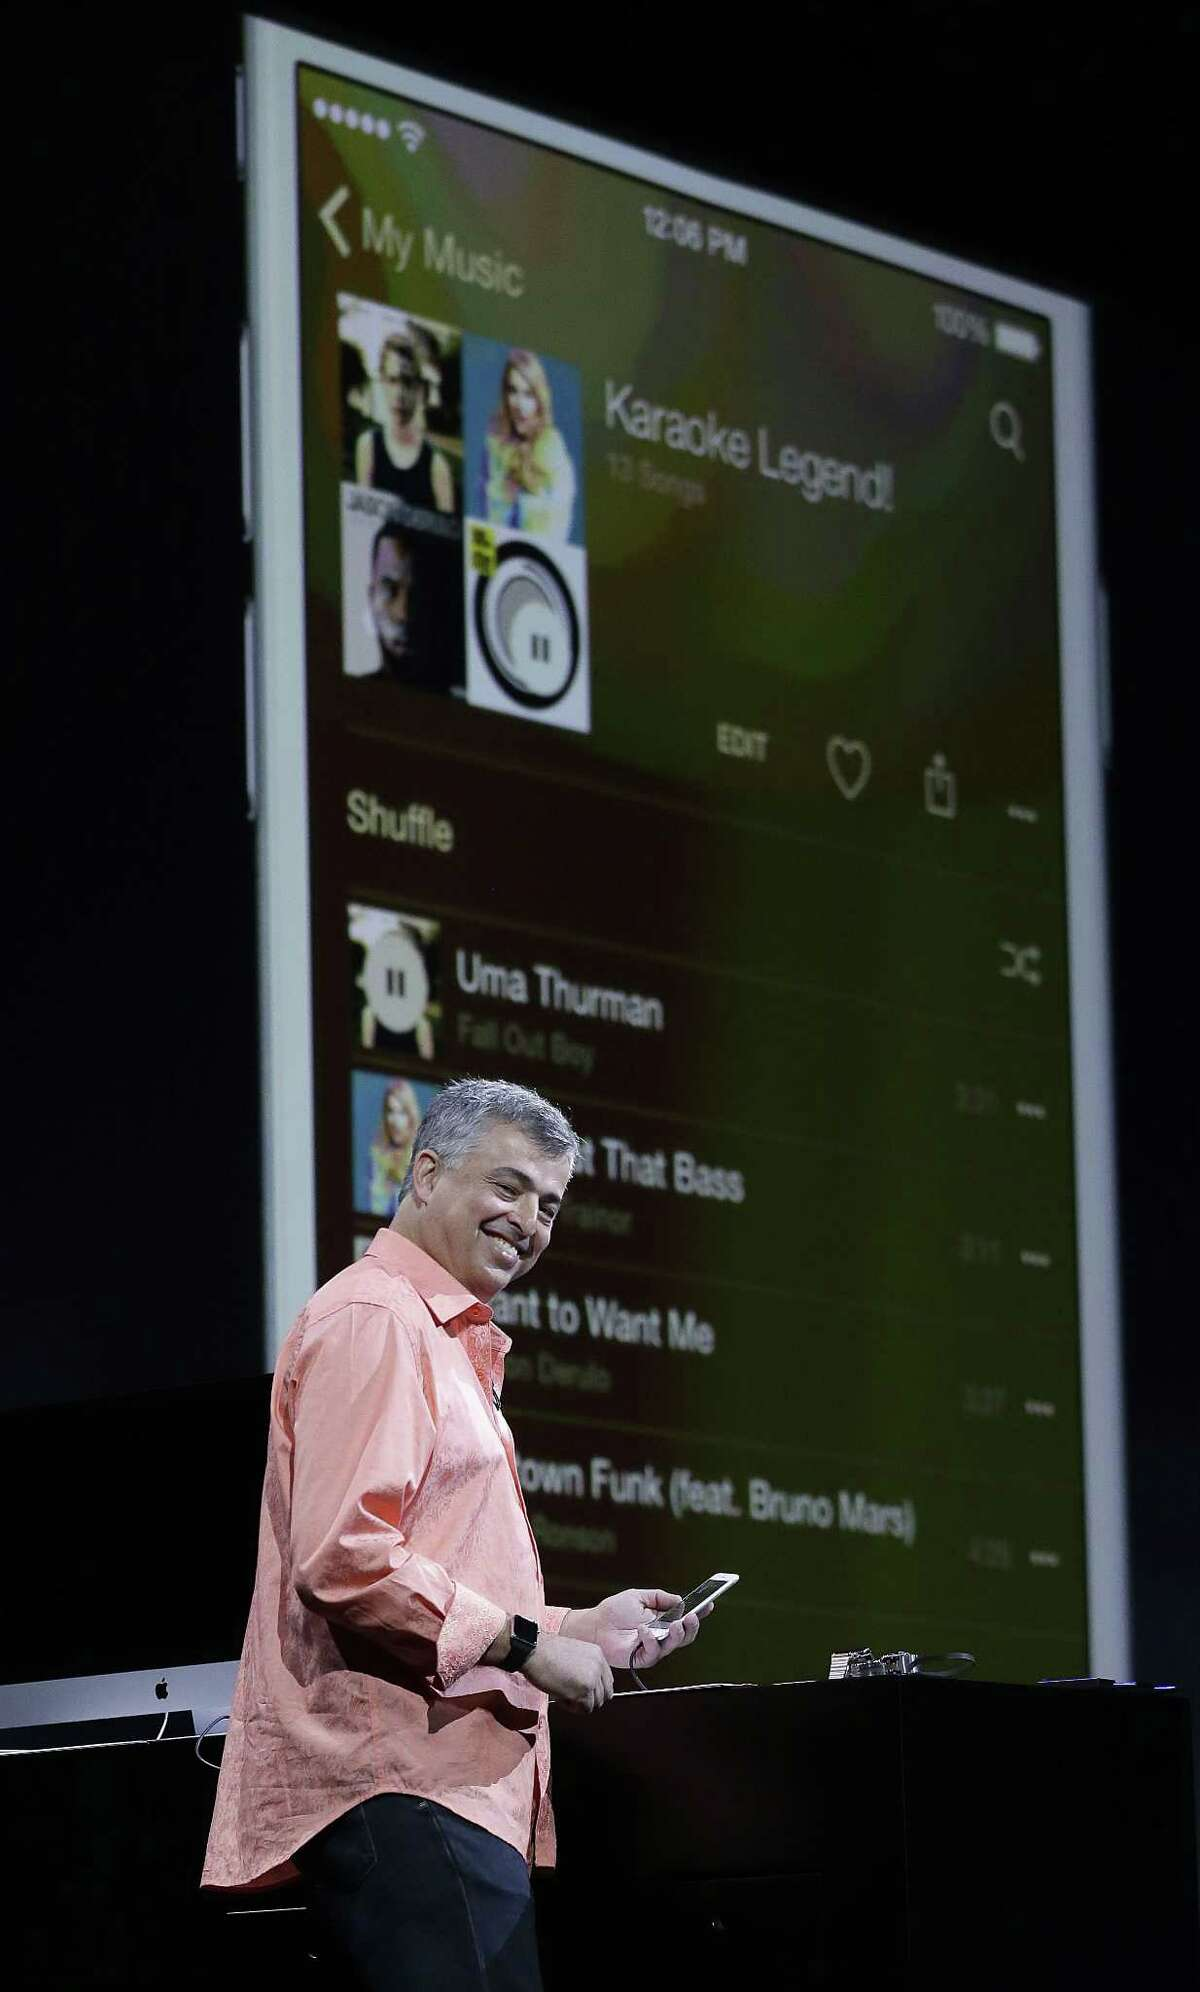 Eddy Cue, Apple senior vice president of Internet Software and Services, speaks about music at the Apple Worldwide Developers Conference in San Francisco June 8.